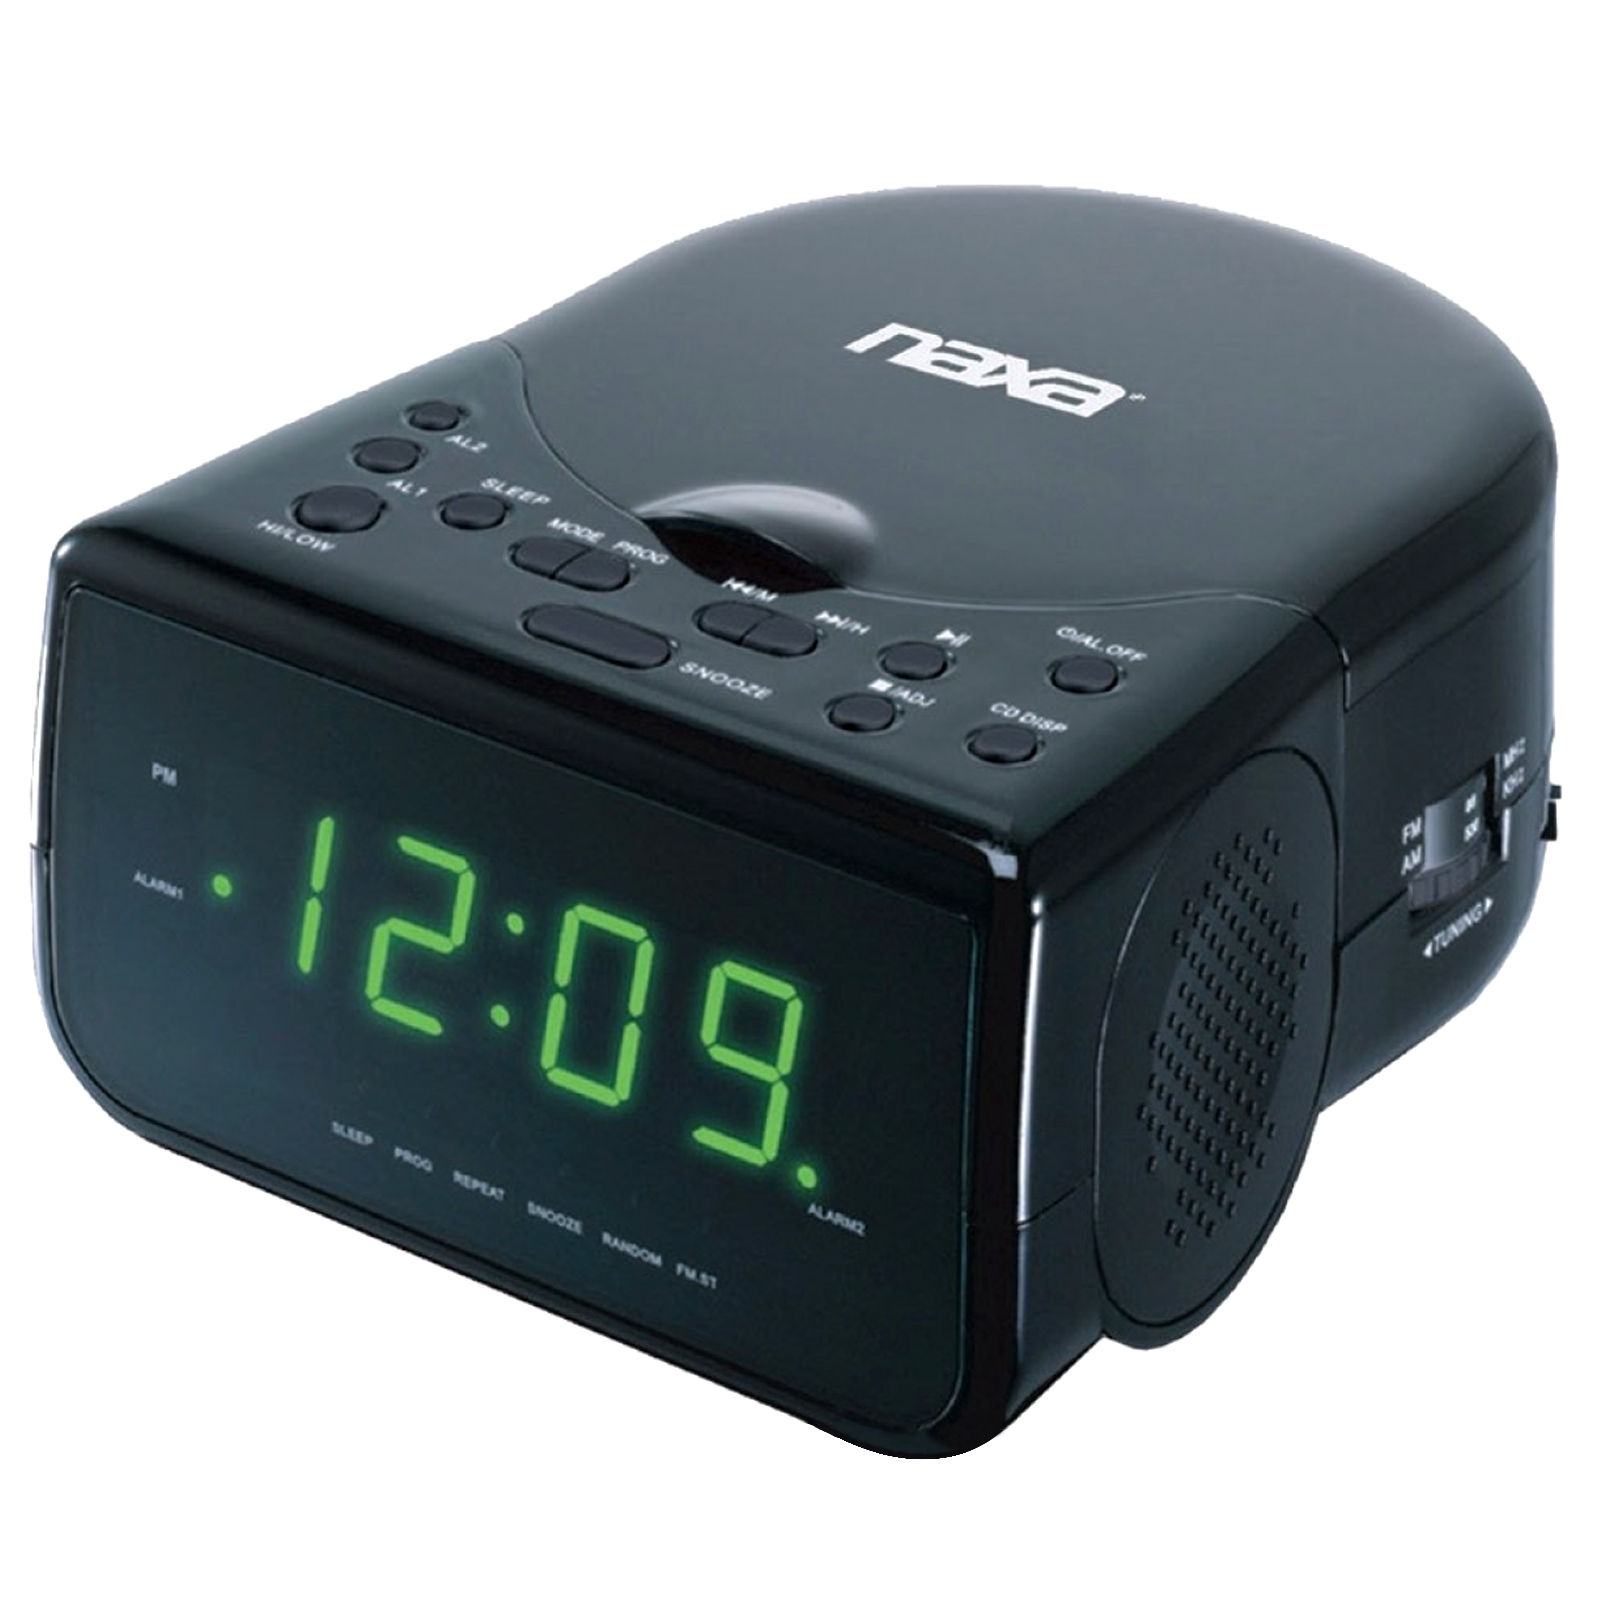 Alarm colck radio with CD player